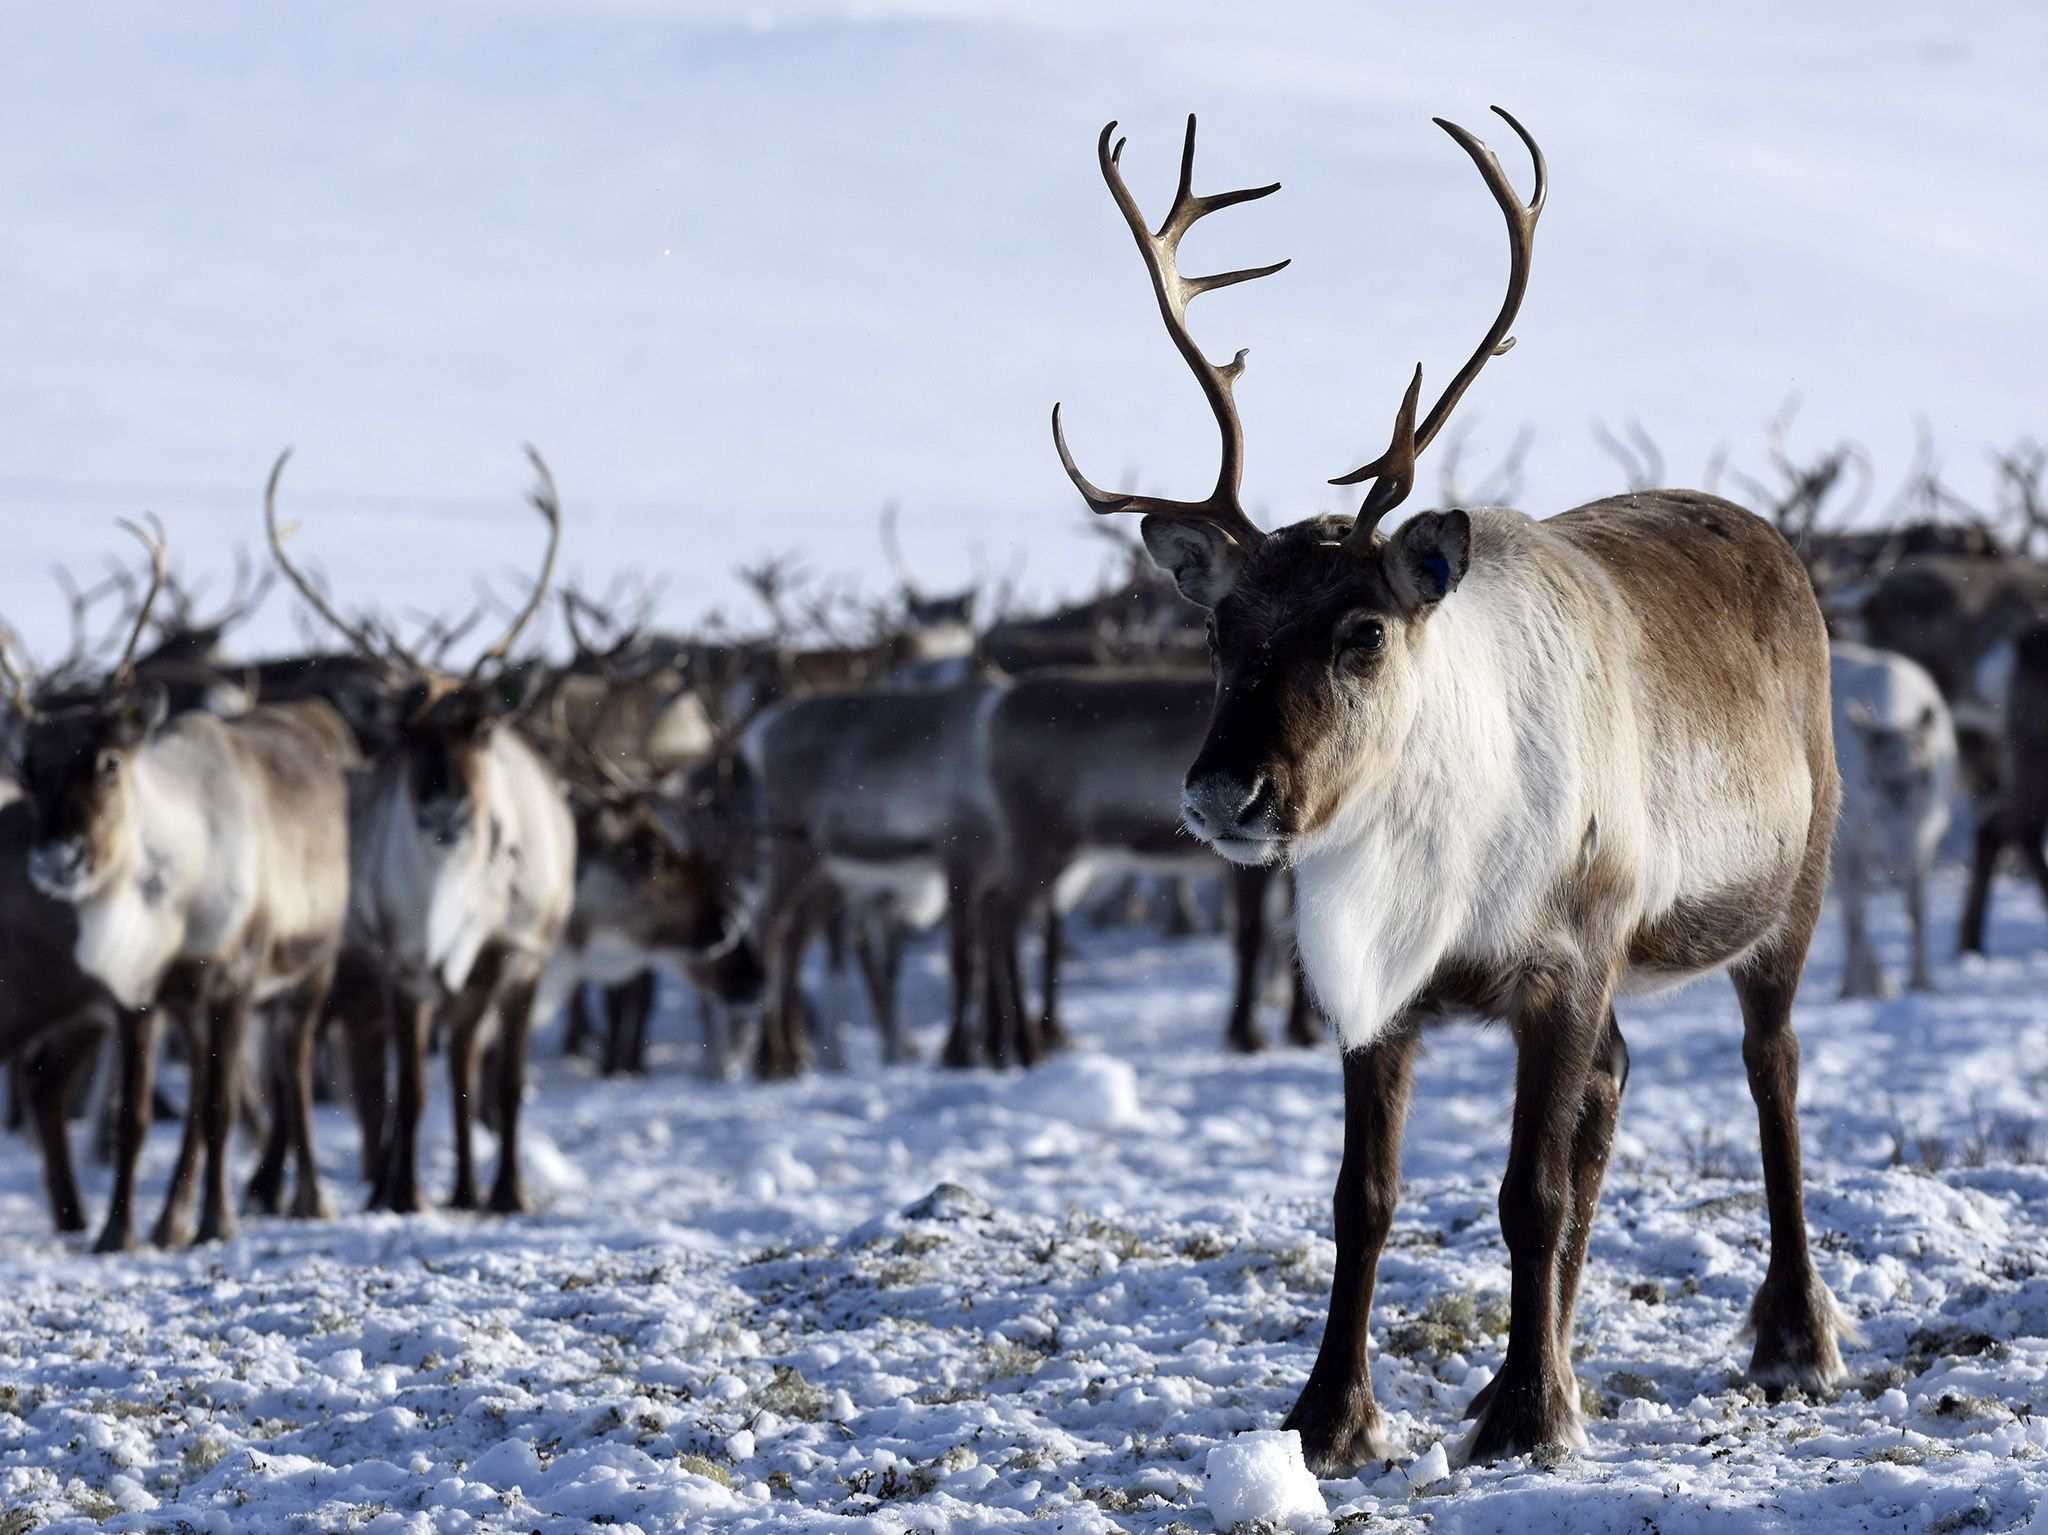 A great herd of Reindeer moving through the snow covered mountains in Norway. This image is from... [Photo of the day - March 2019]